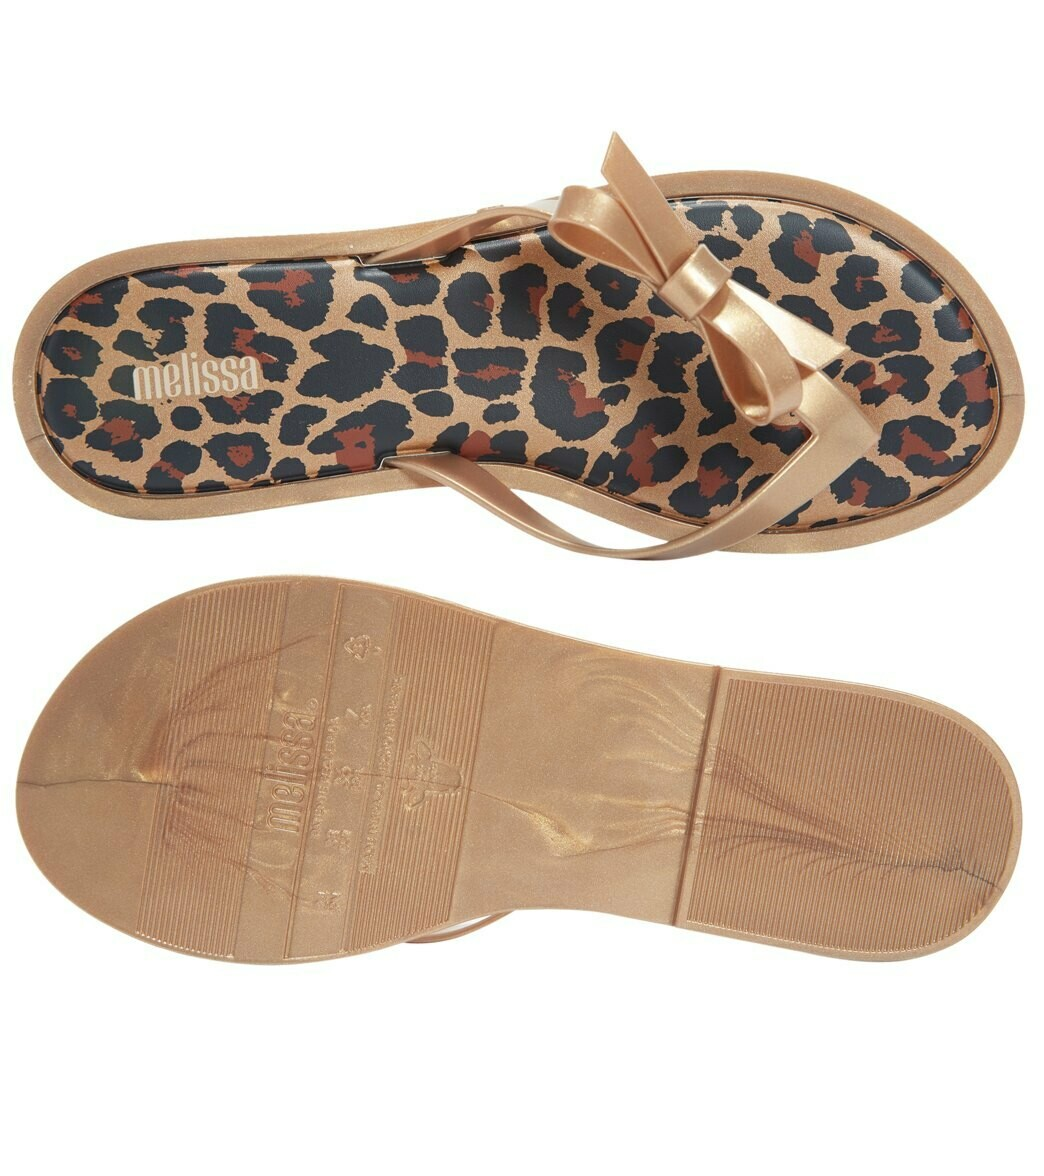 Melissa Flip Flop in Gold, Black and Brown Animal Print